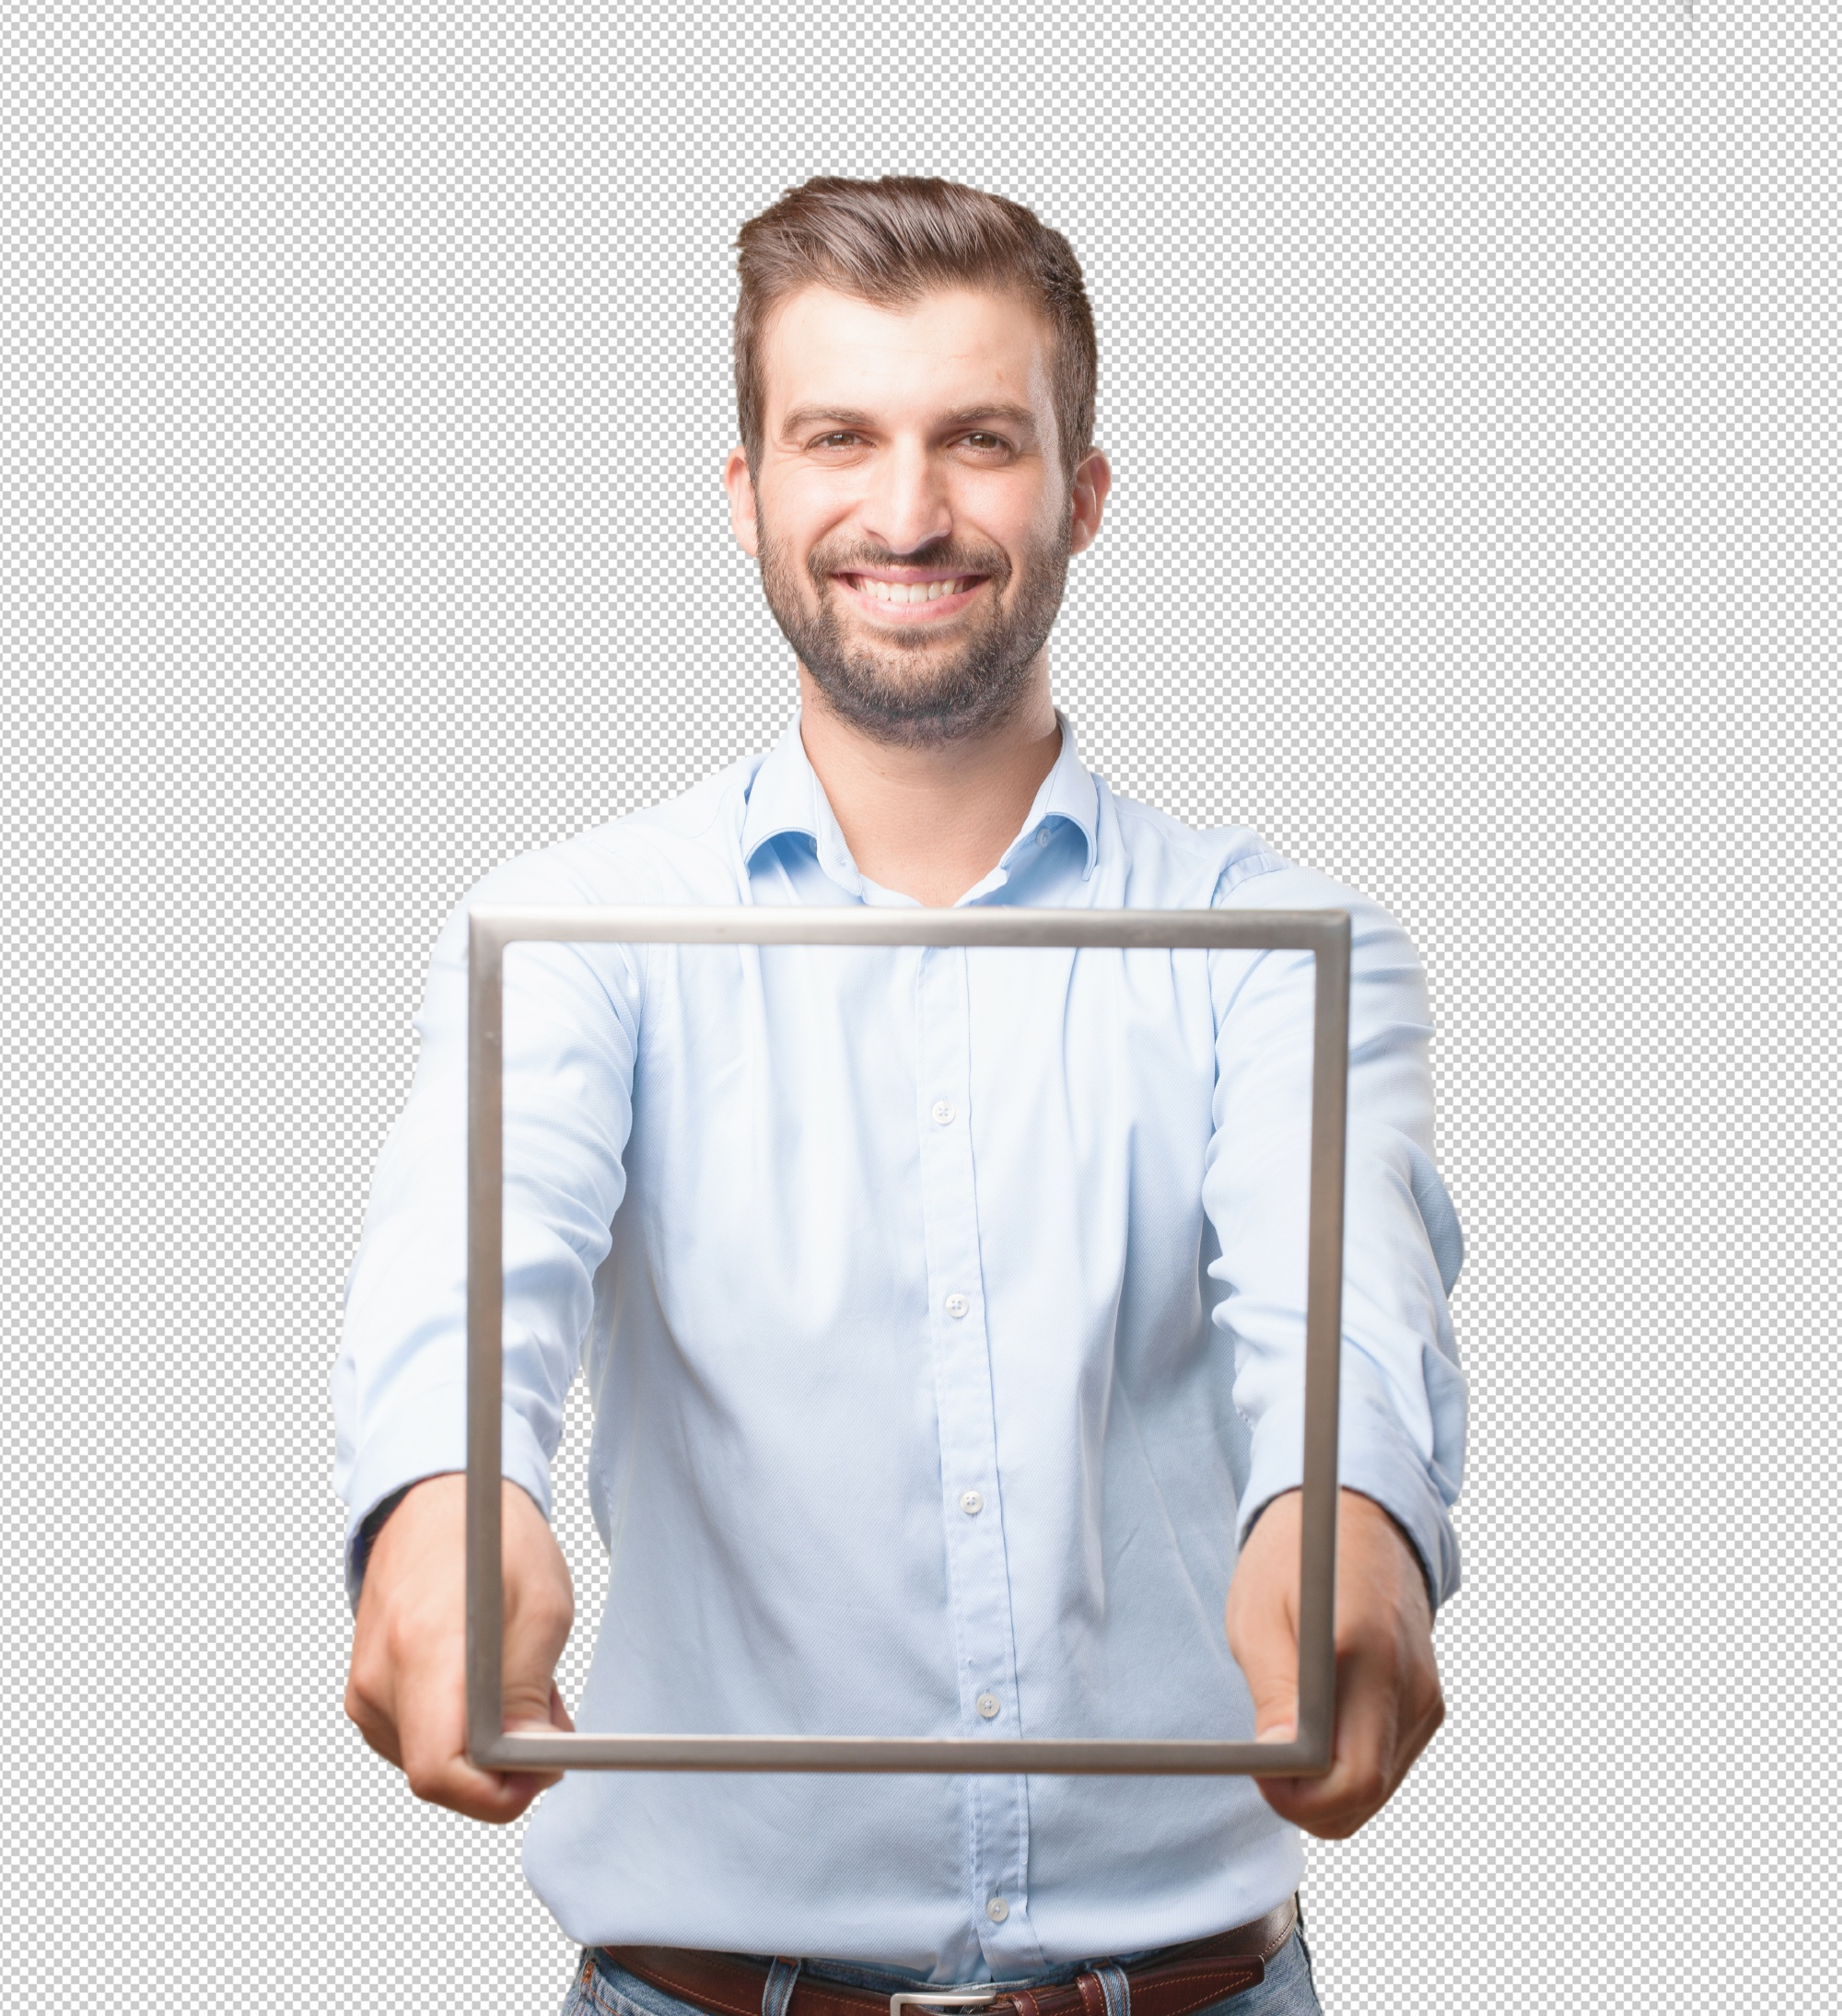 Handsome young man with frame